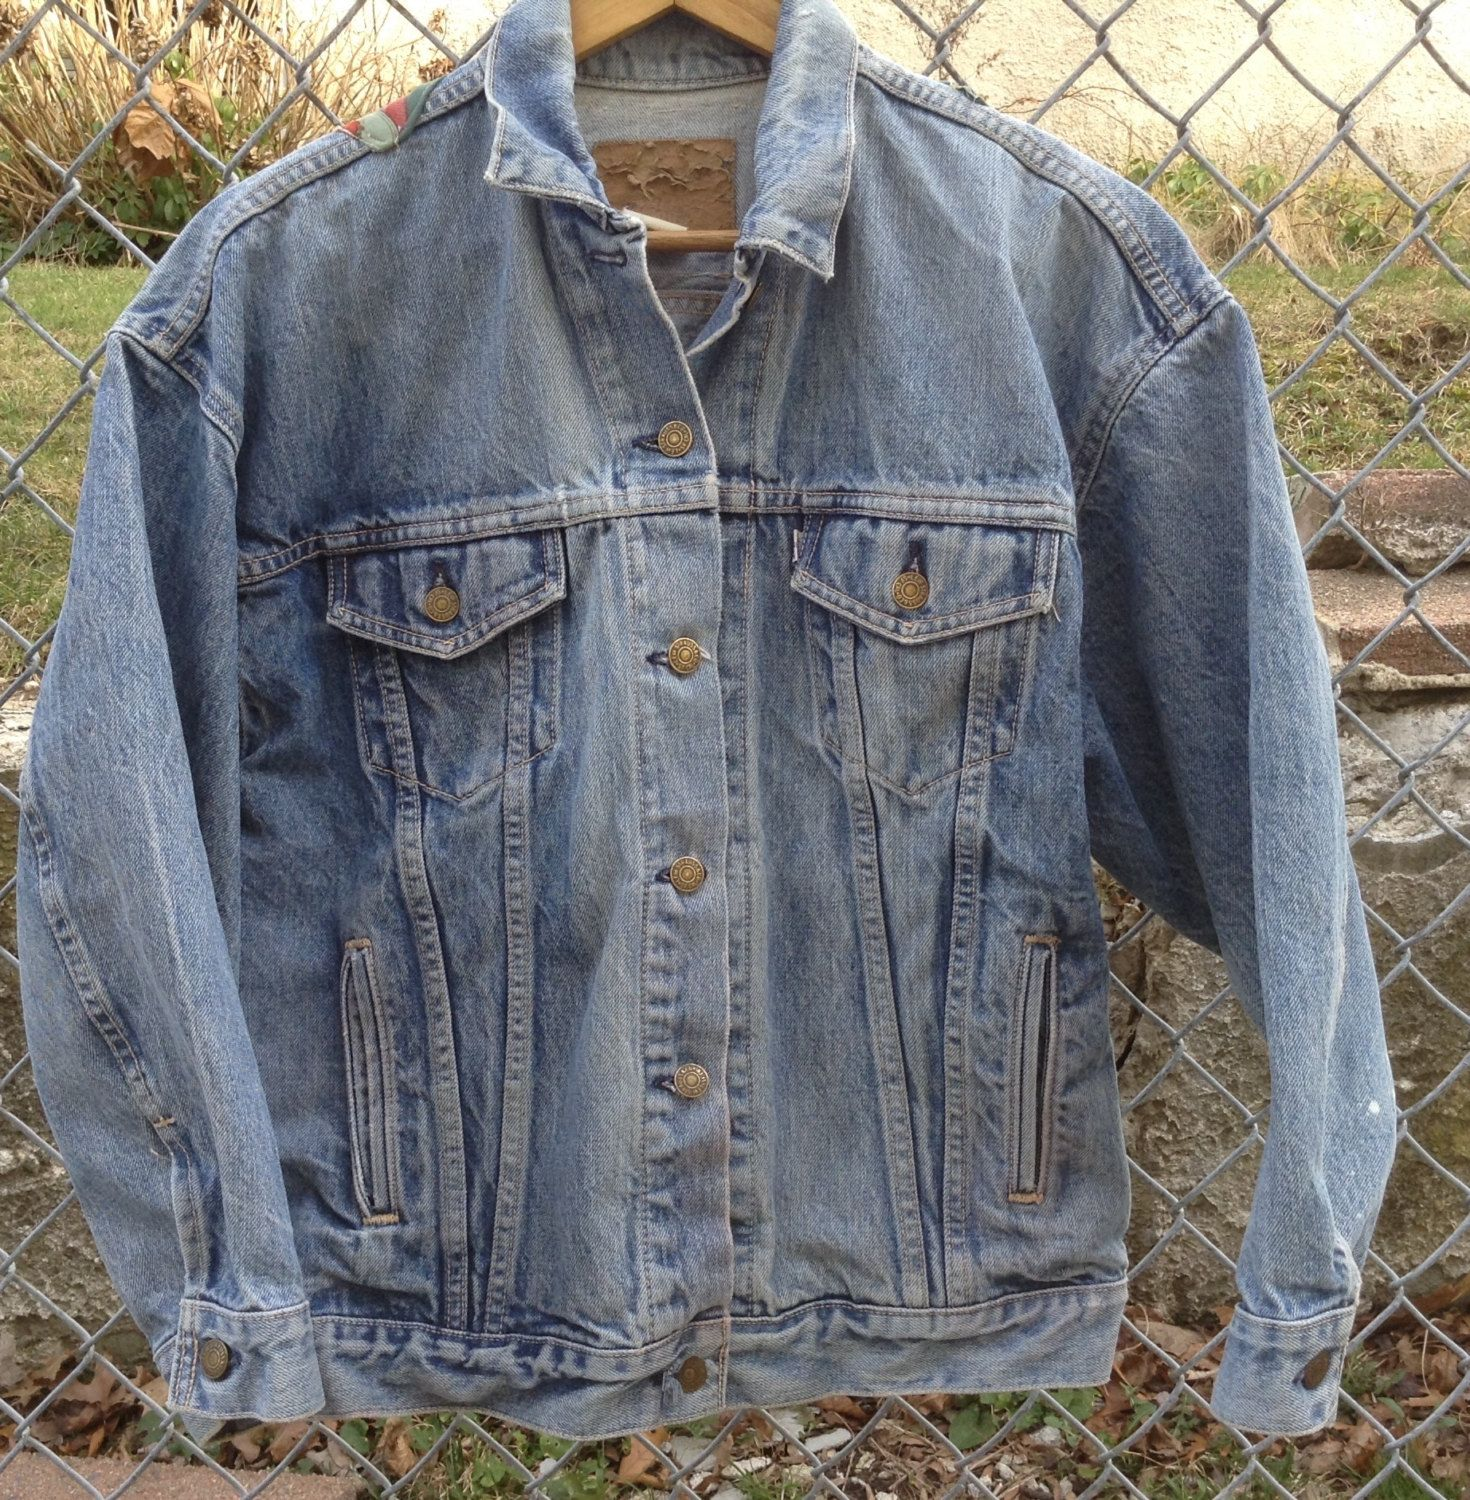 Levi Jean Jacket - Vintage Levi Denim Jacket - Mens Levi Jacket - Decorated Jean Jacket - Levi sz Medium Jean Jacket With White Tab - Gift AbxWDYVlsP